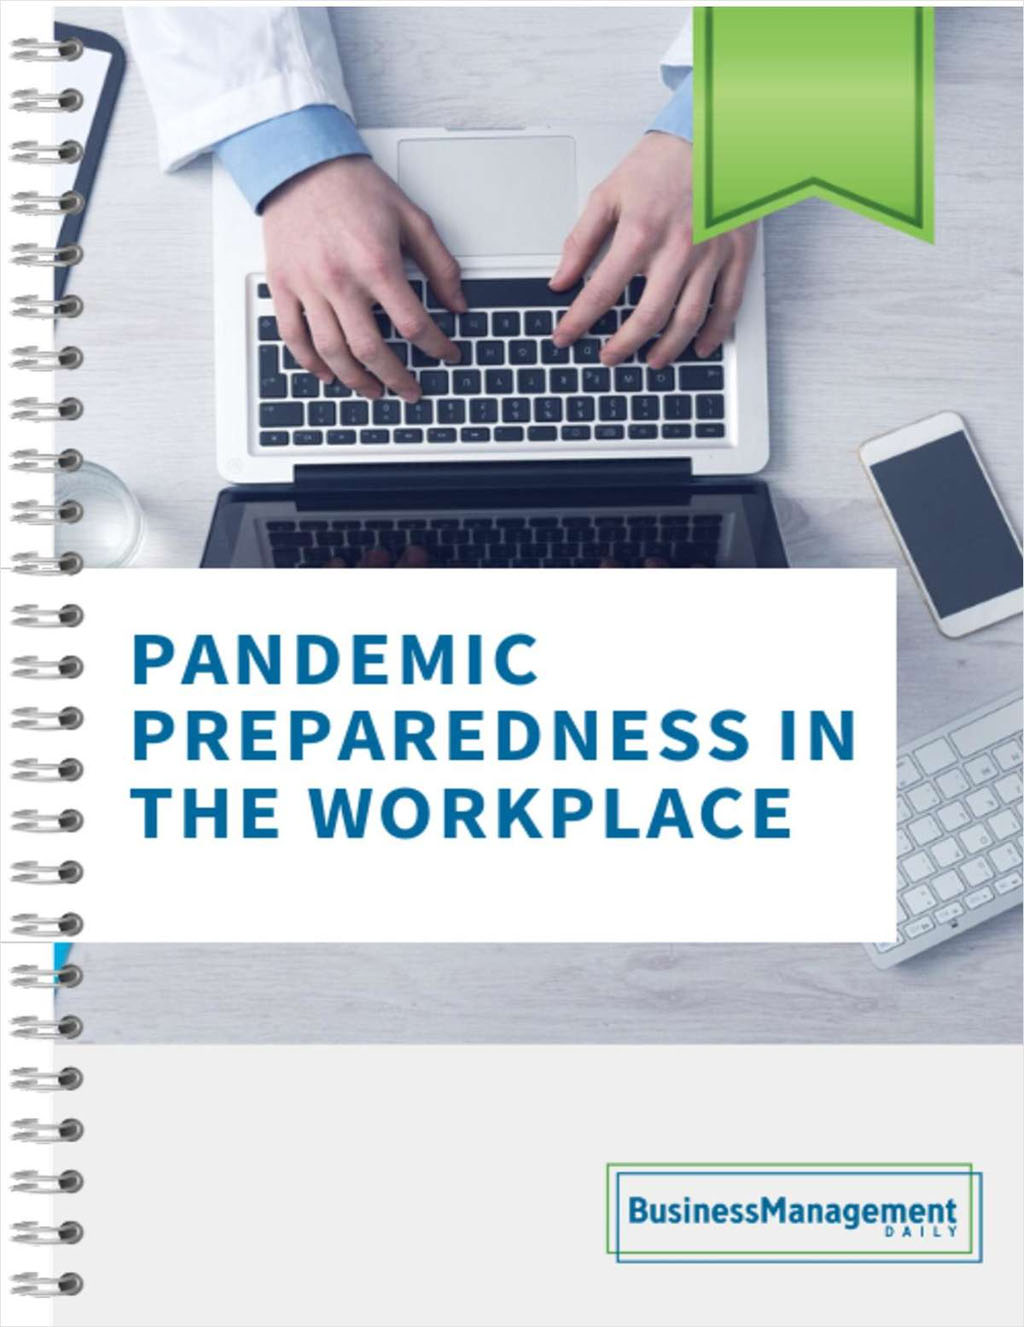 Pandemic Preparedness in the Workplace Screenshot